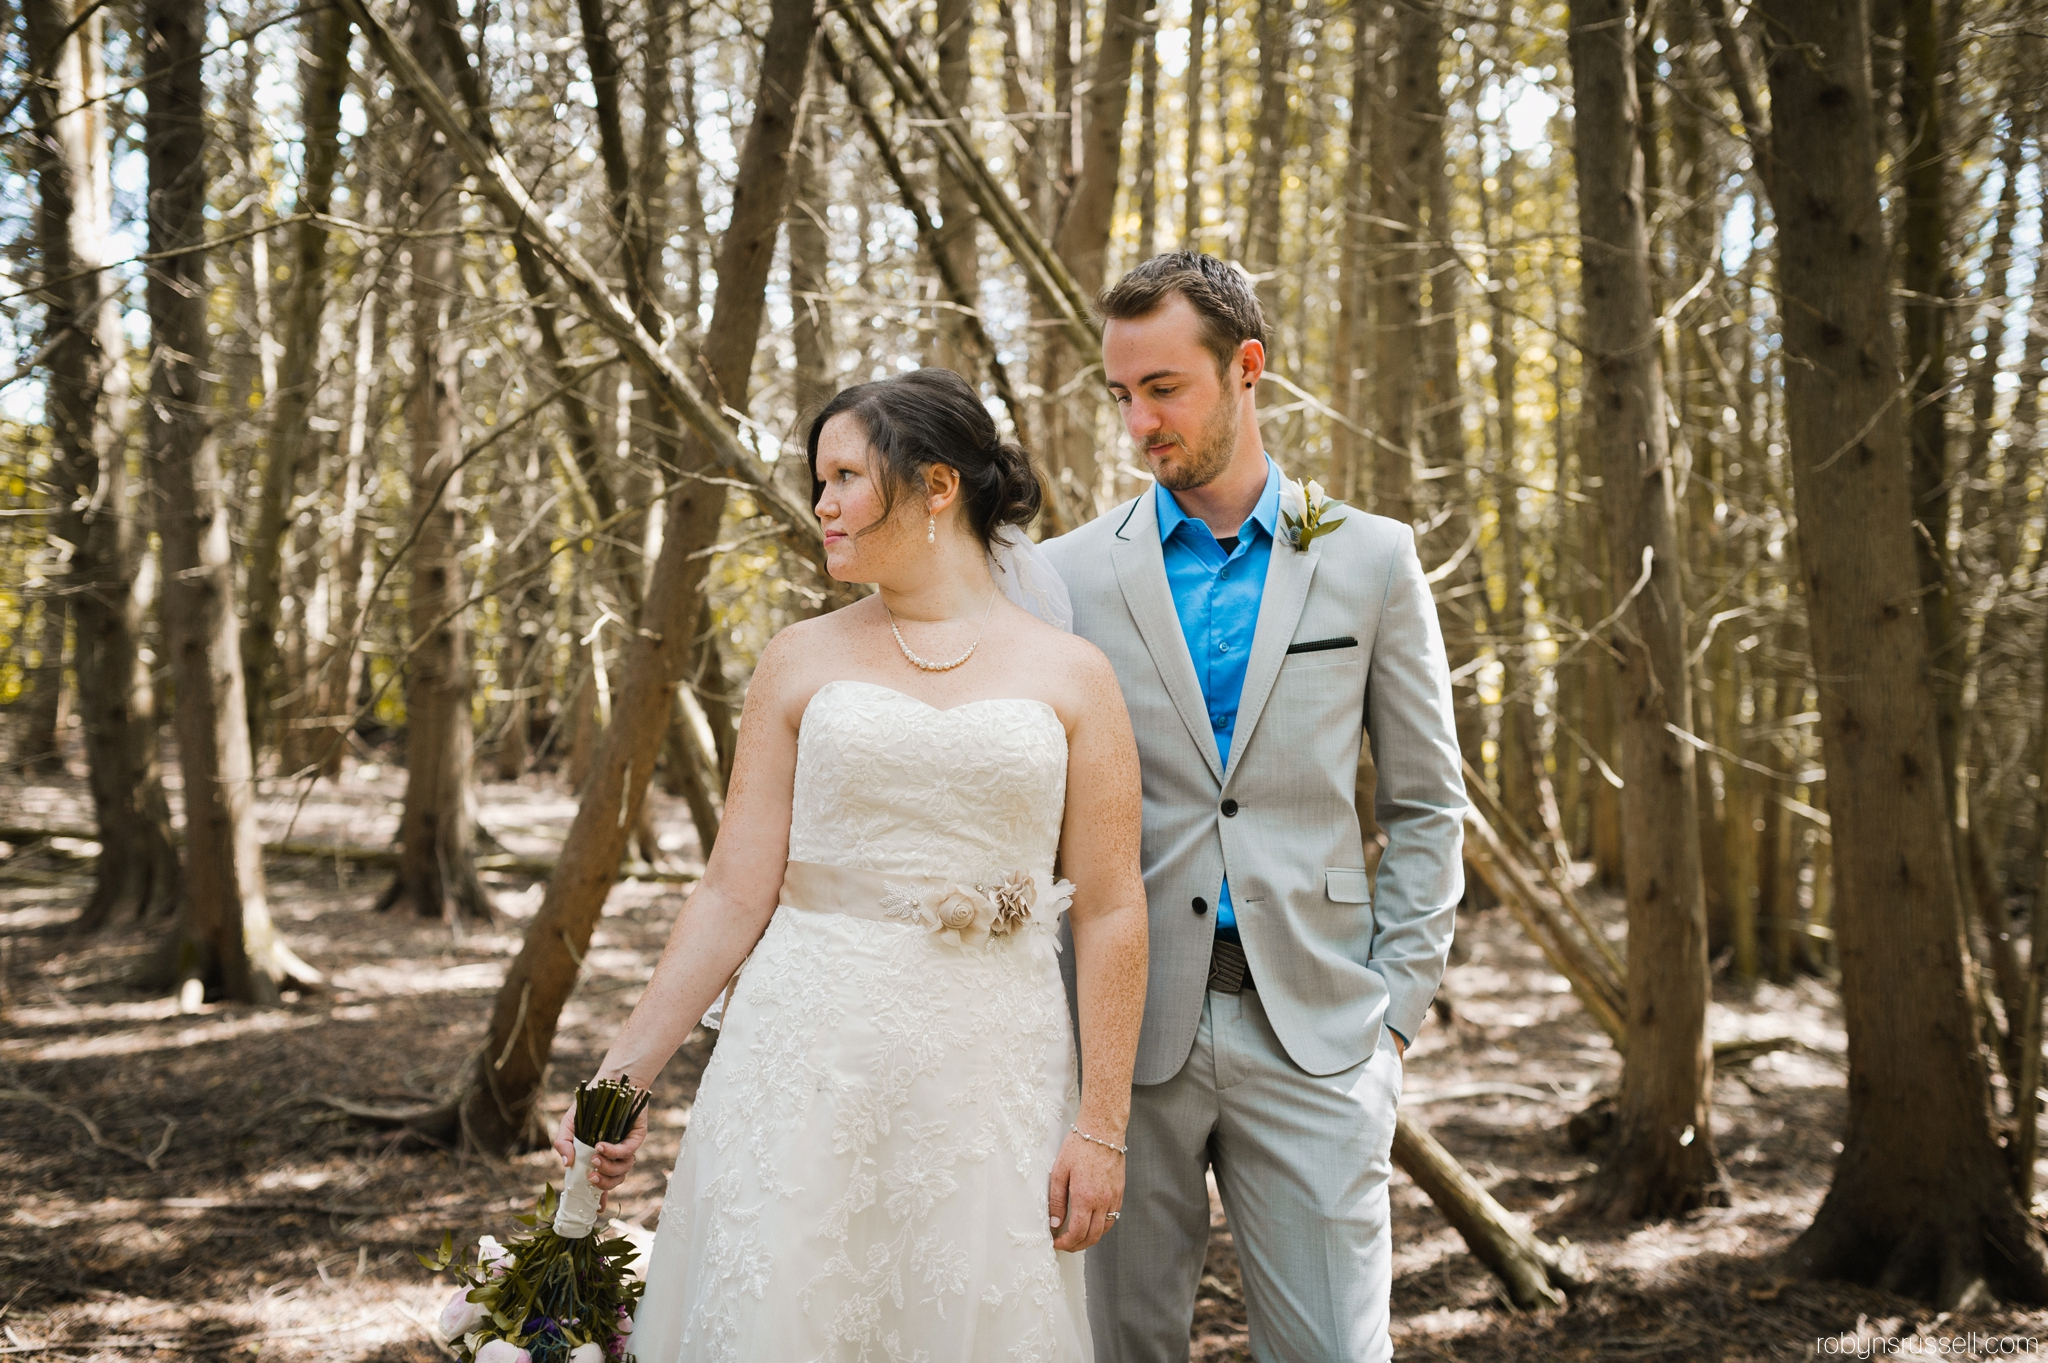 33-bride-and-groom-in-belwood-forest.jpg